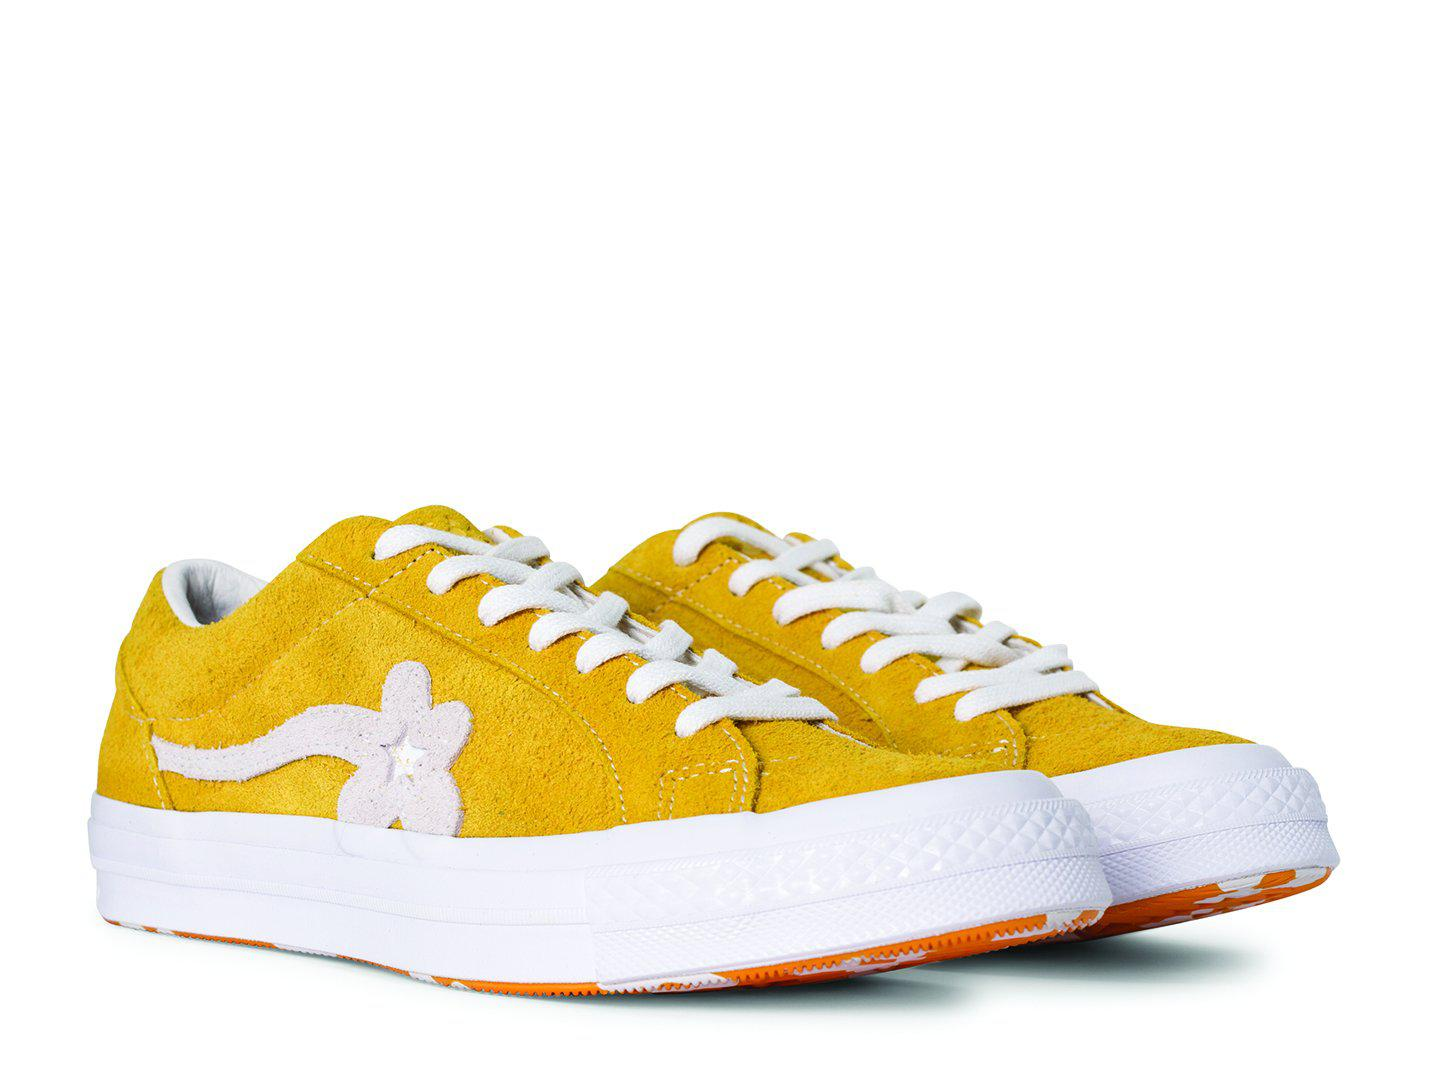 Converse Suede One Star X Golf Le Fleur In Yellow For Men Lyst